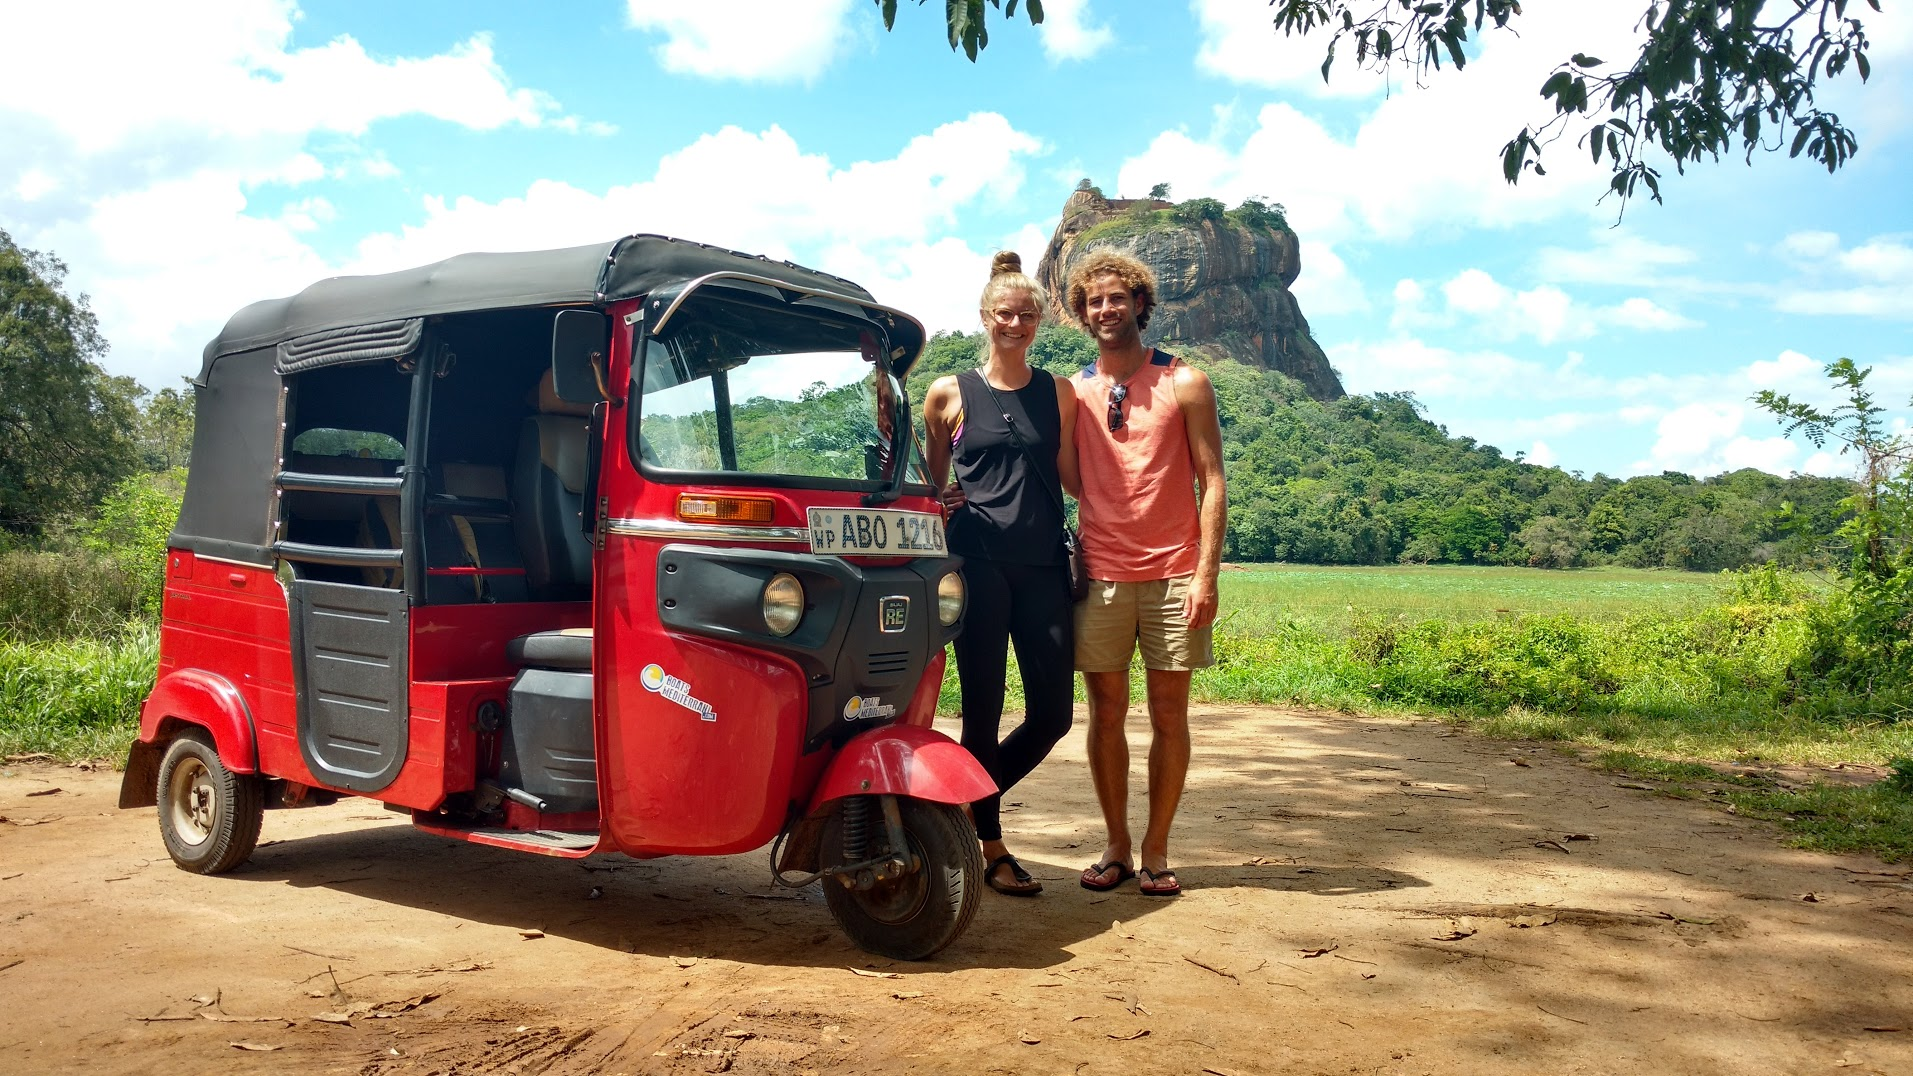 Estelle and I showing off our trusty mode of transport, Pippin, while we were touring Sri Lanka. Photo taken in front of Lion Rock, Sigiriya, by a friendly taxi driver.